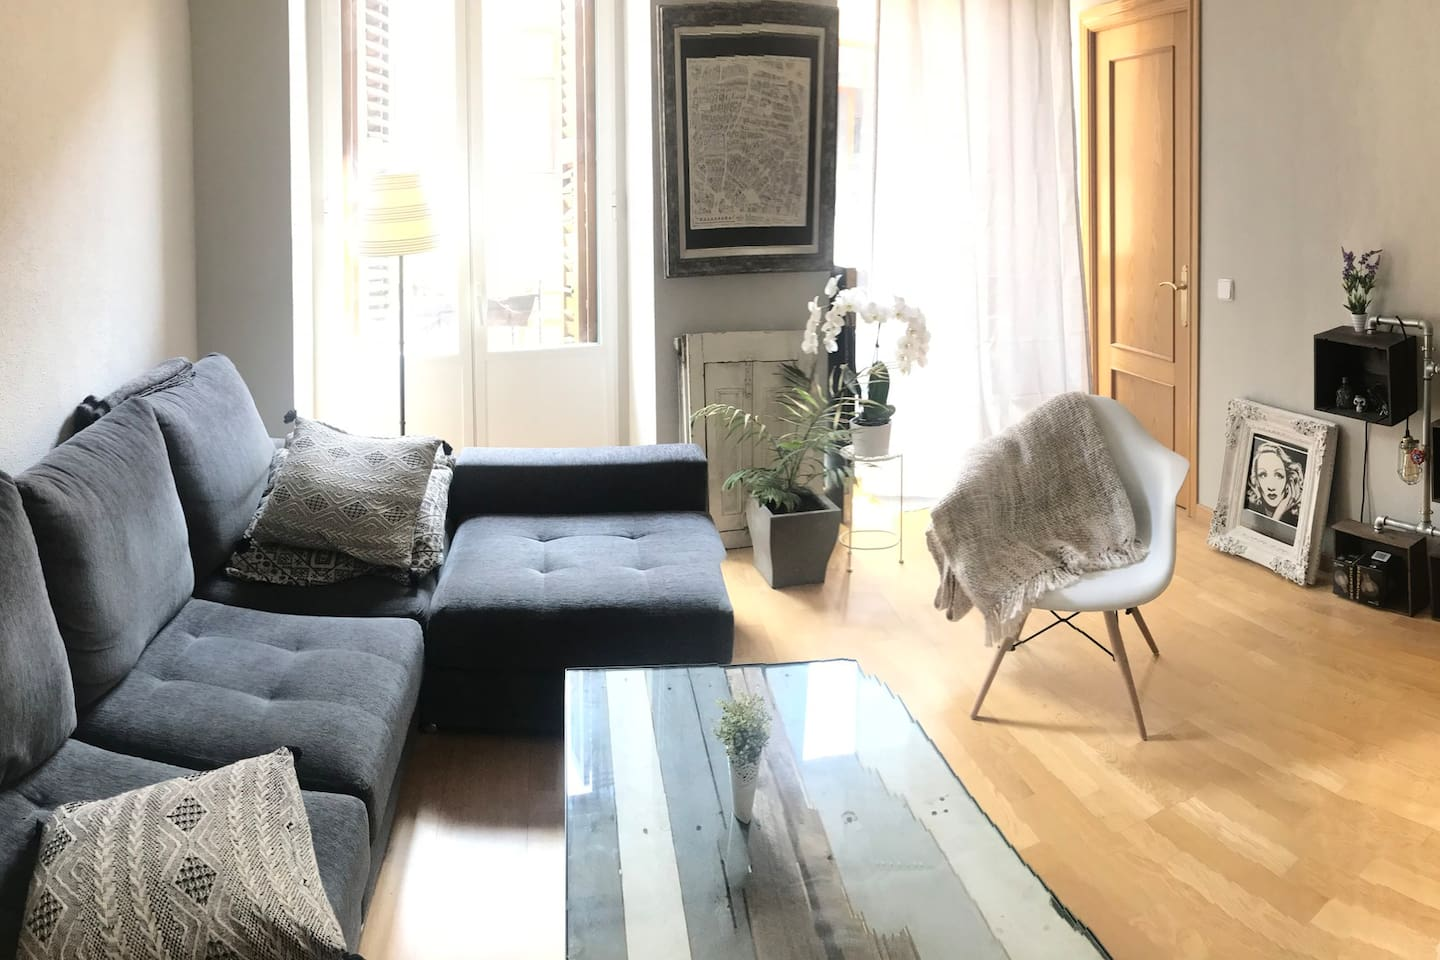 This is the living room